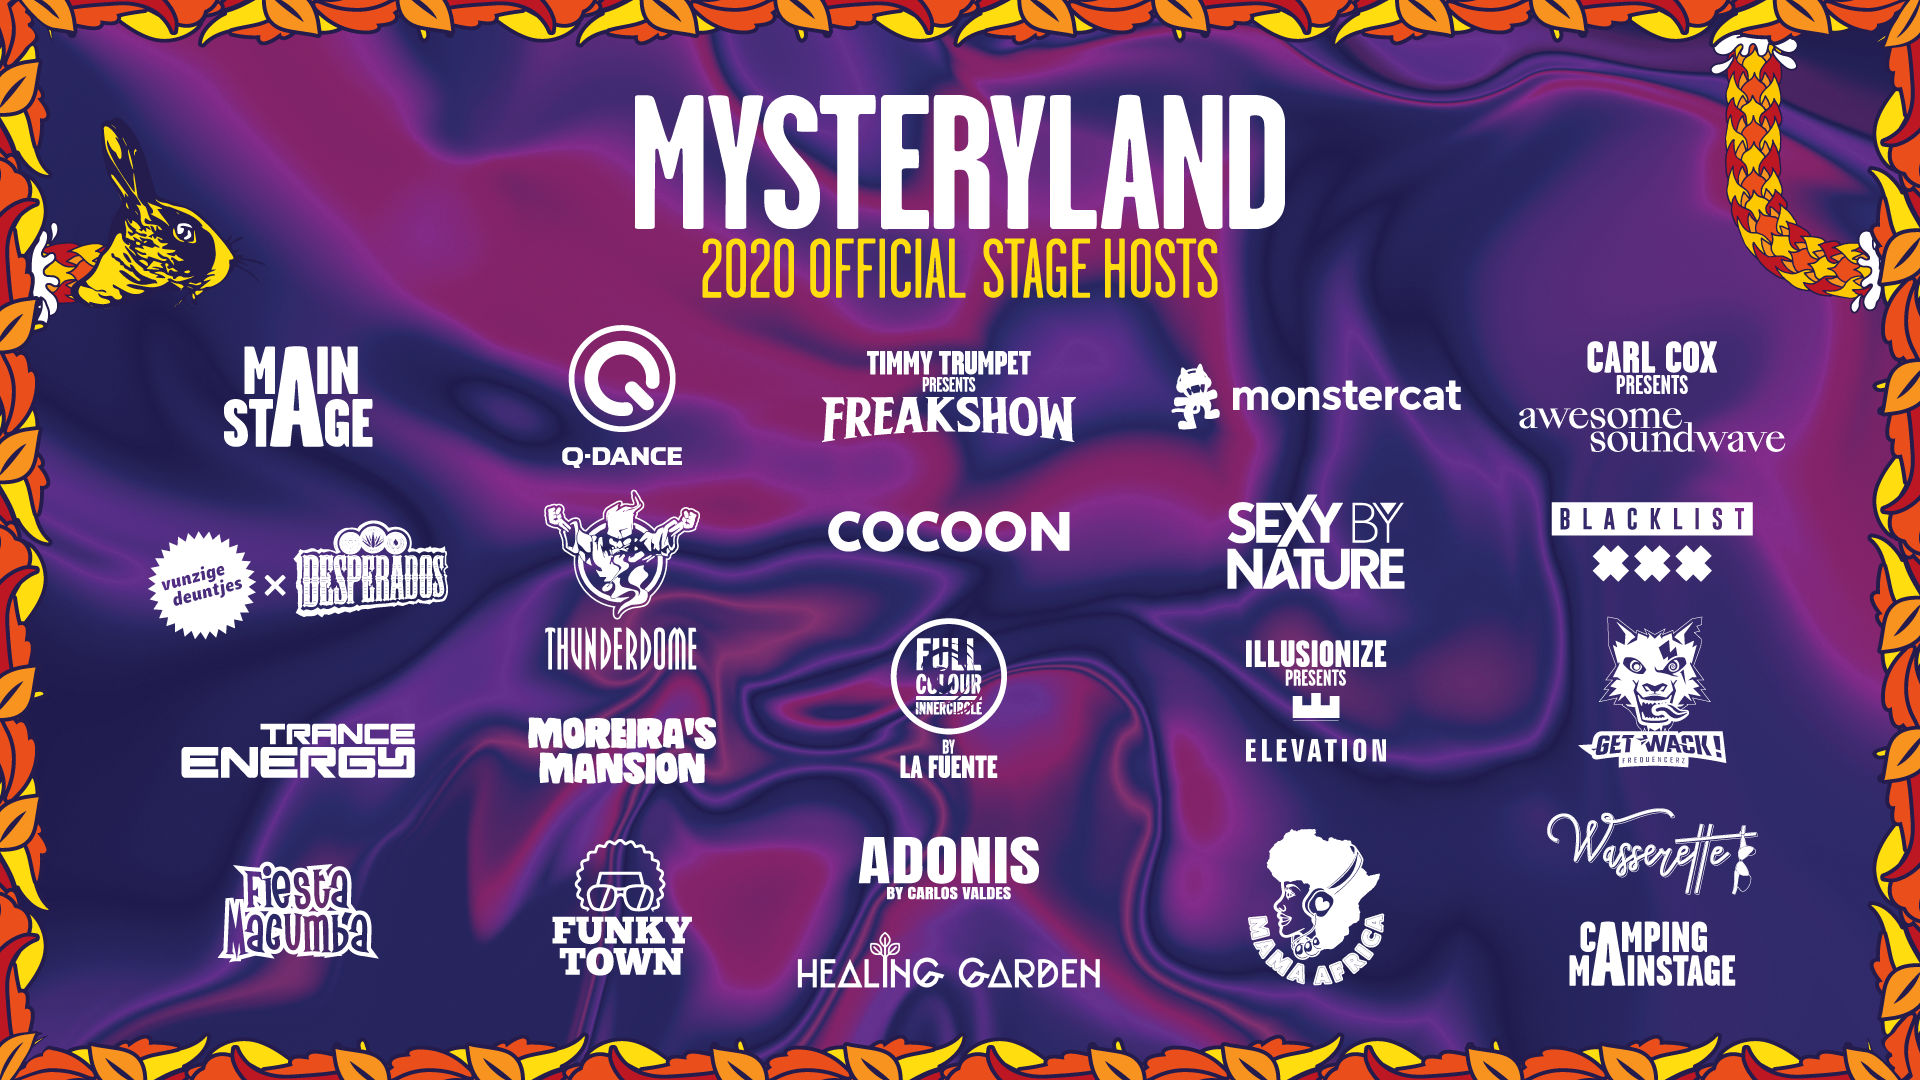 Mysteryland - Weekend 2020